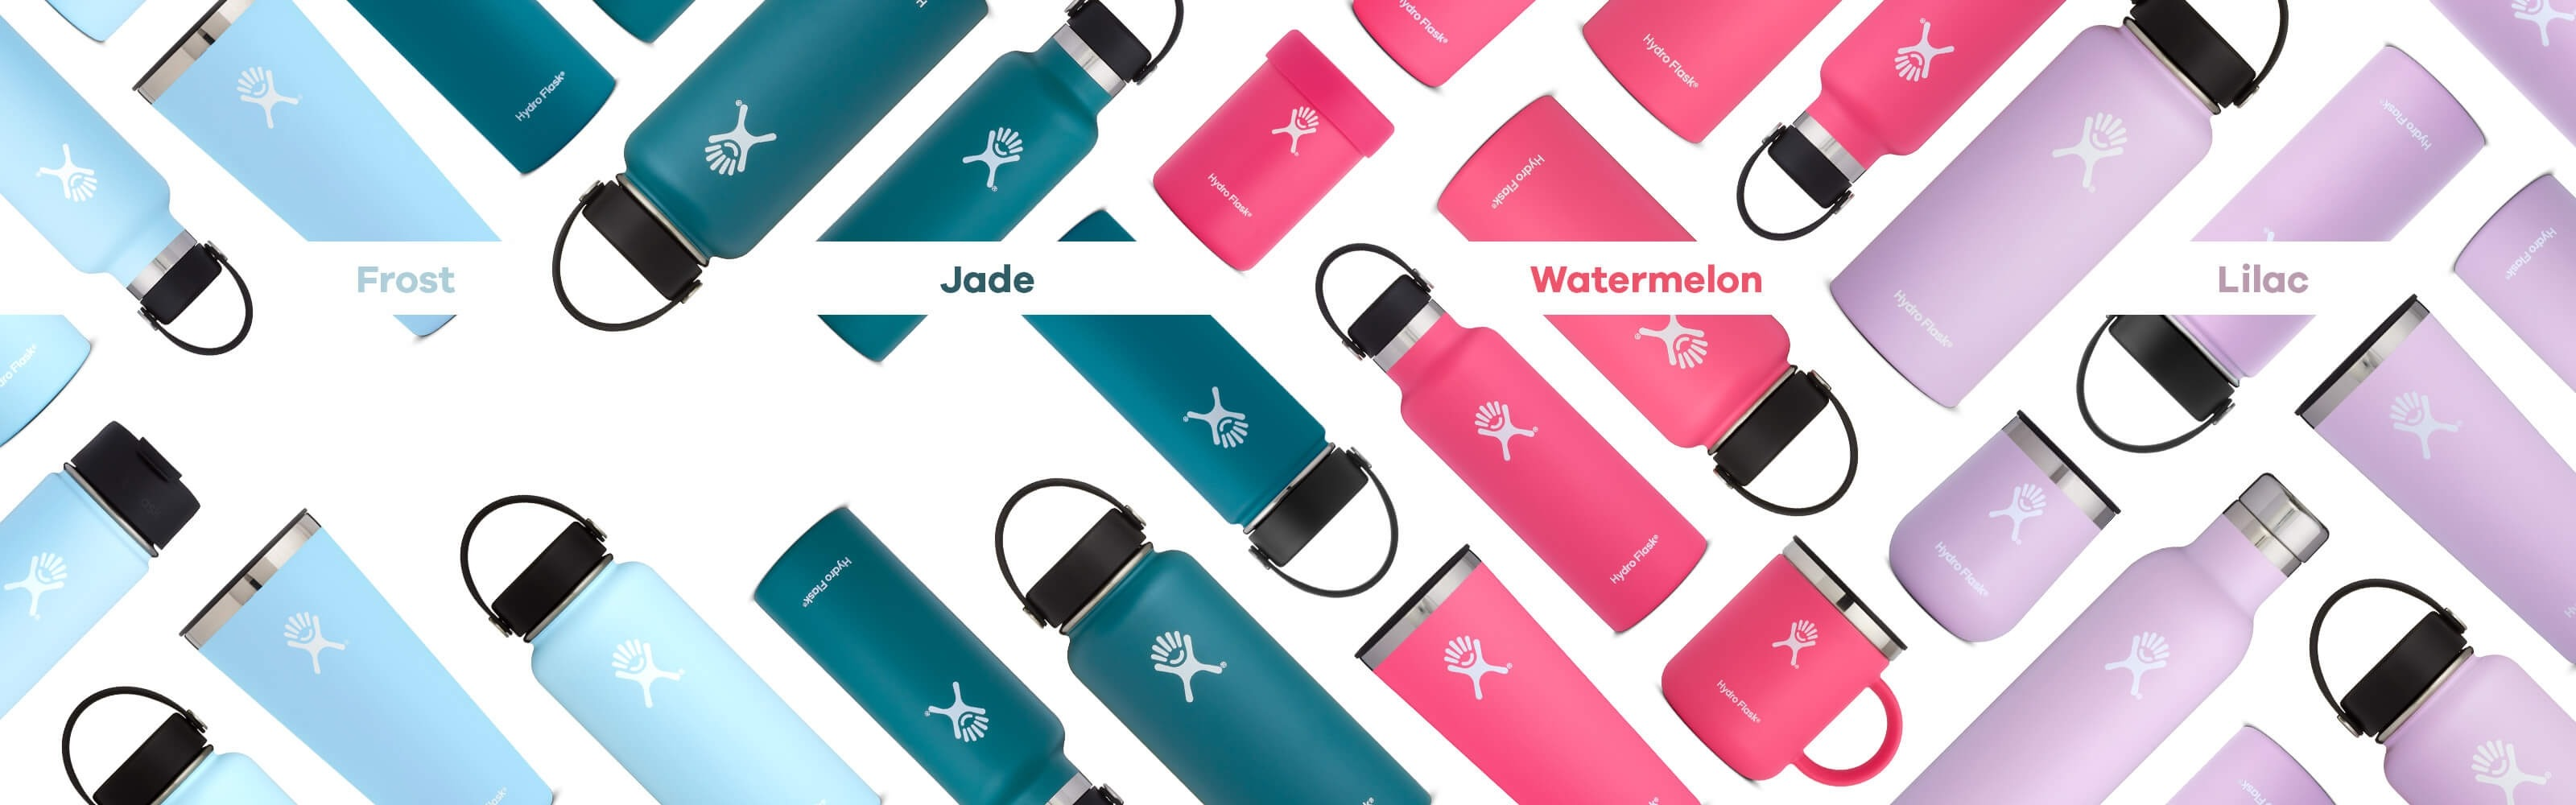 Introducing new colors: Jade, Lilac, Watermelon, and Frost.